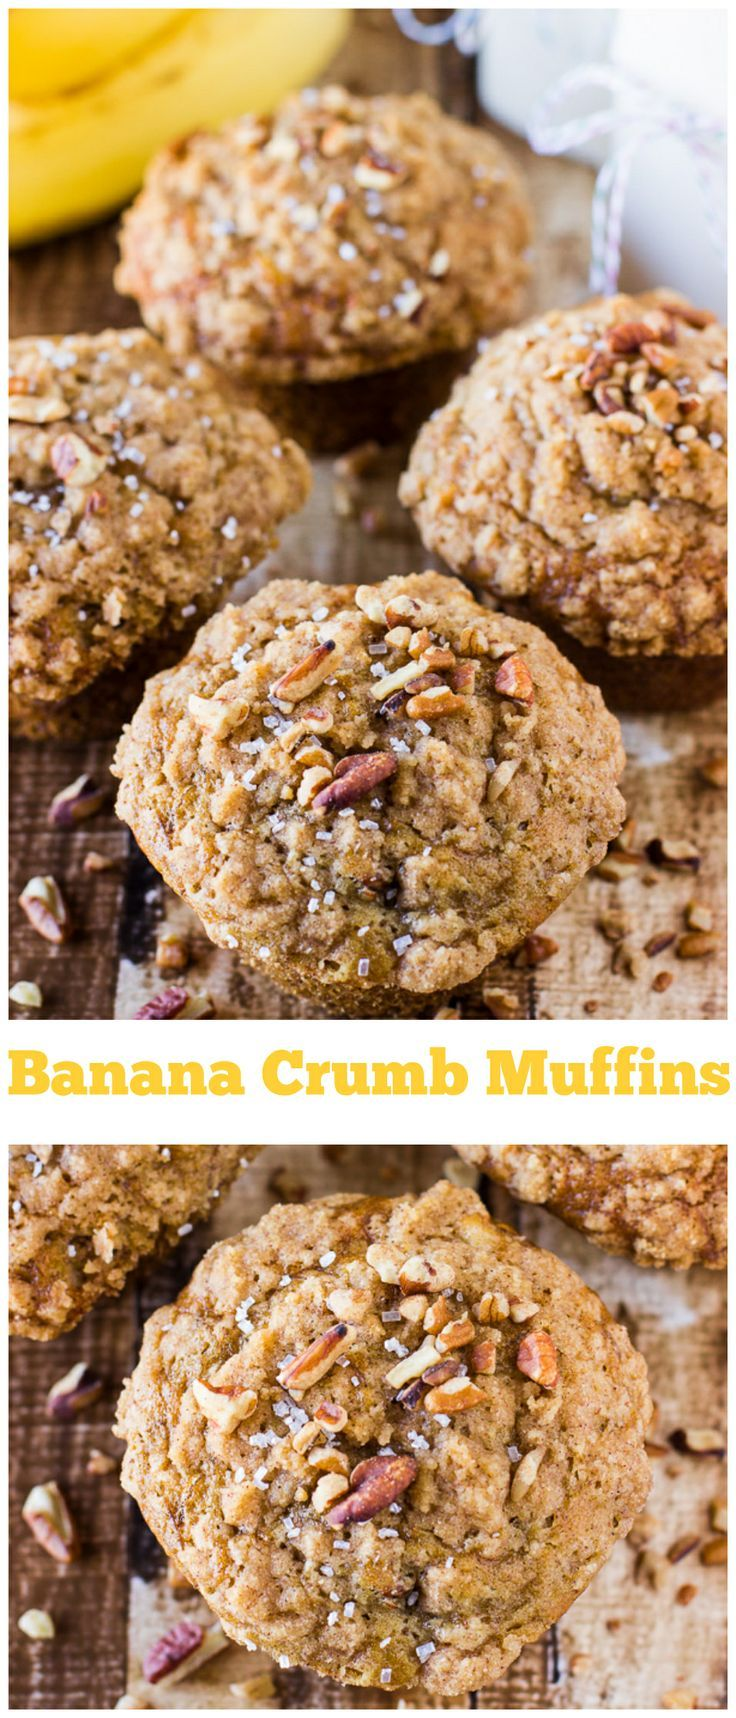 Moist and flavorful banana muffins topped with a brown sugar crumb topping that will melt in your mouth!